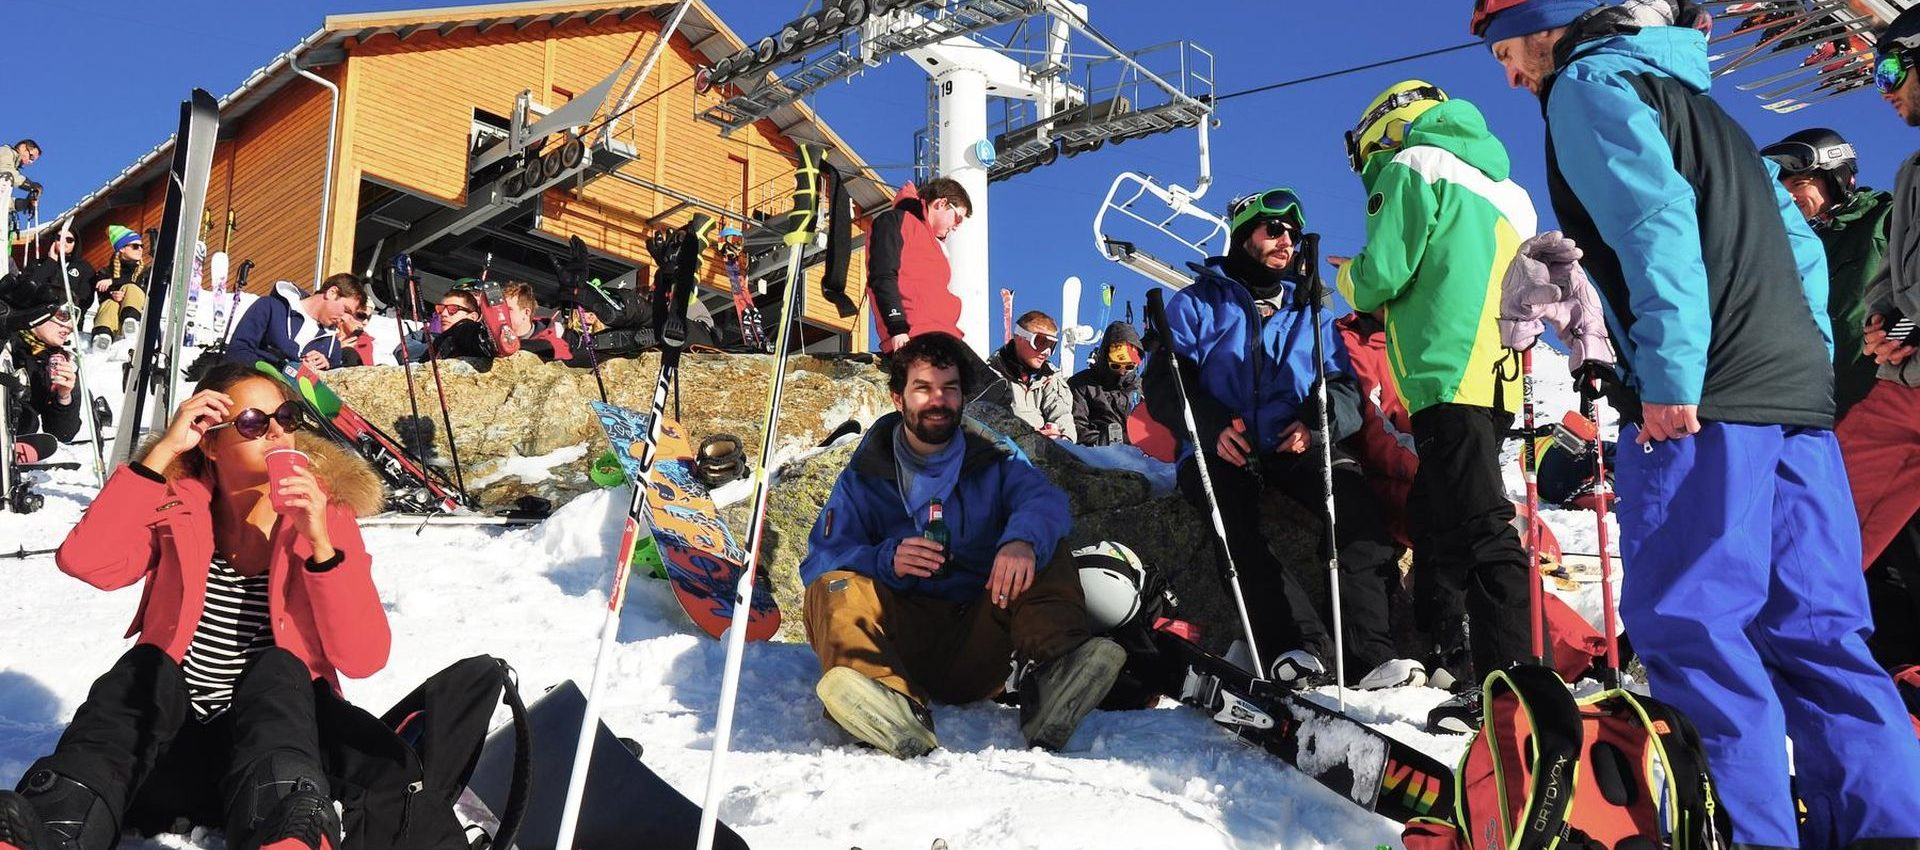 The huge French resorts have some serious après-skis even on the slopes.